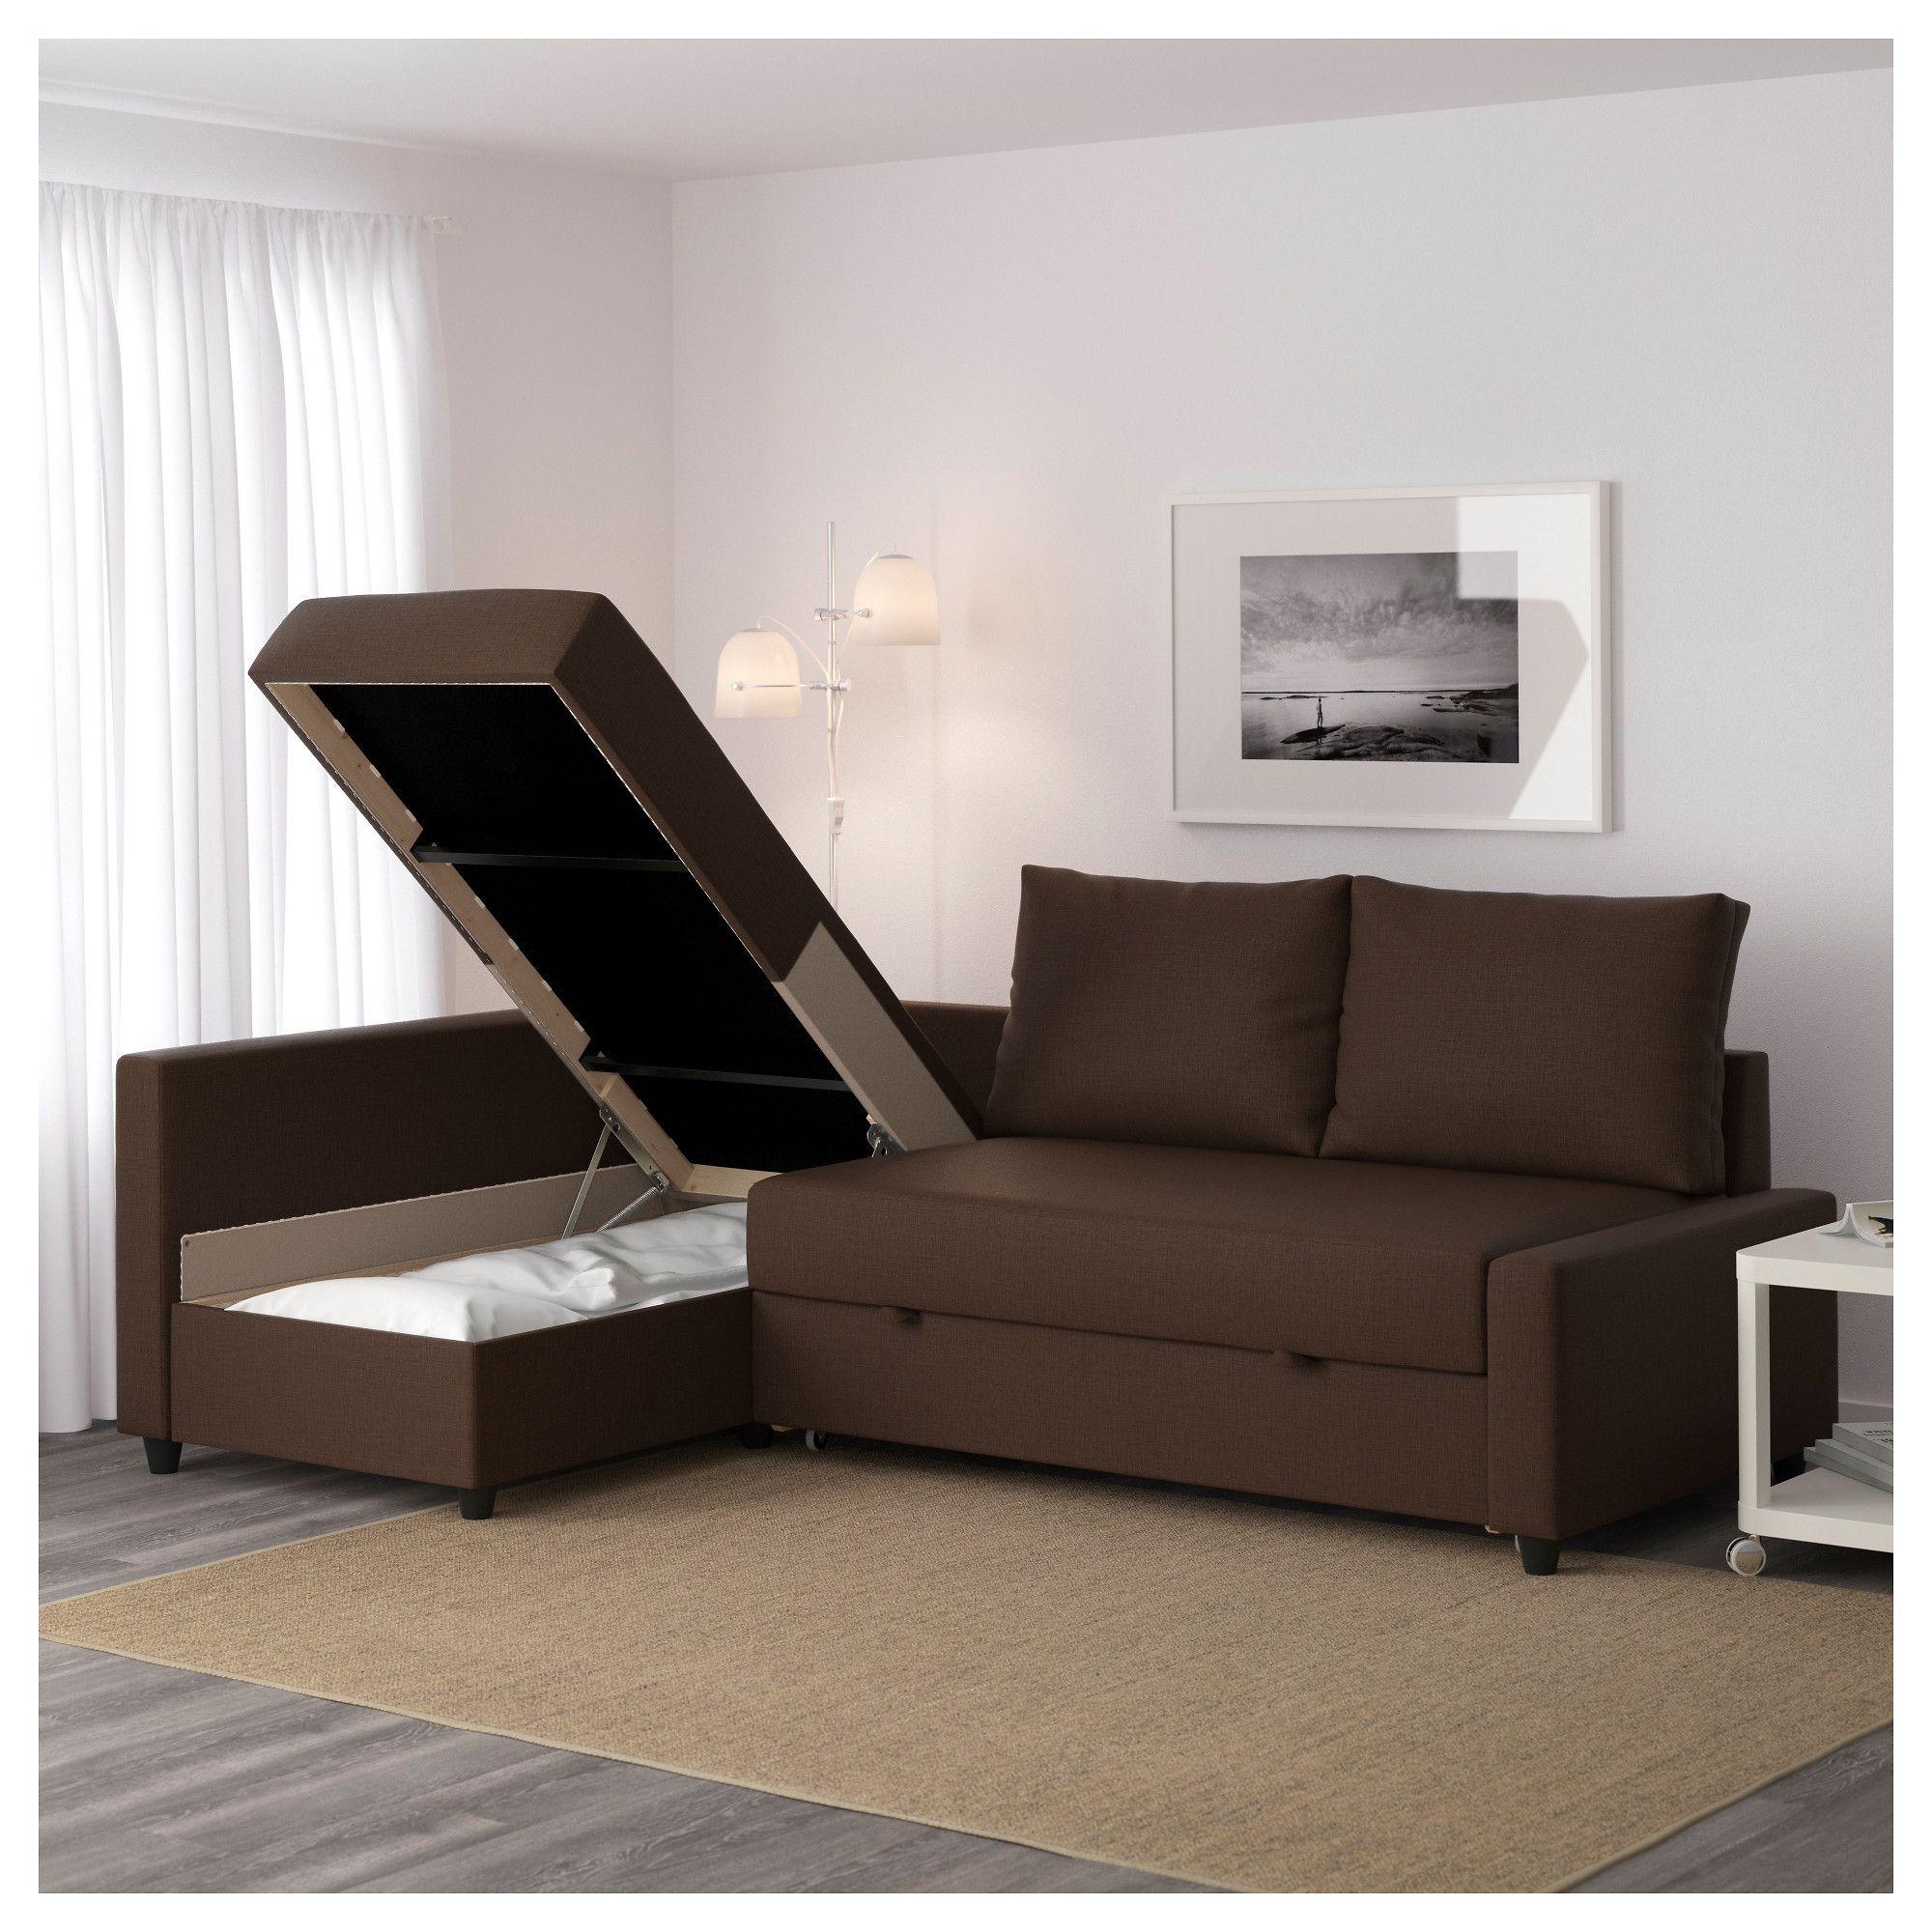 s couch chaise hodan bernie sofa by phyl furniture co ashley